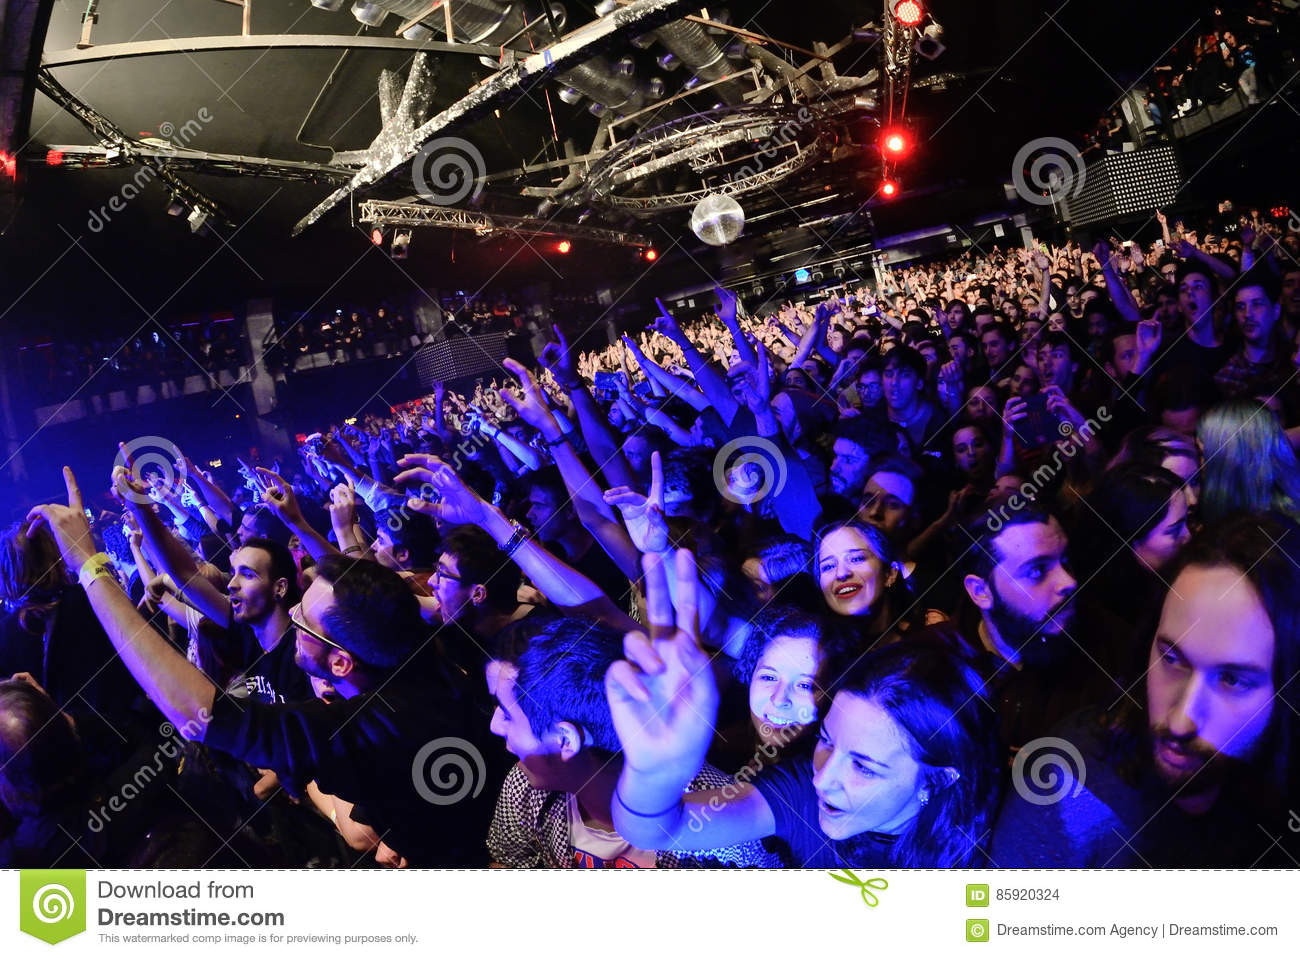 Crowd at the discotheque